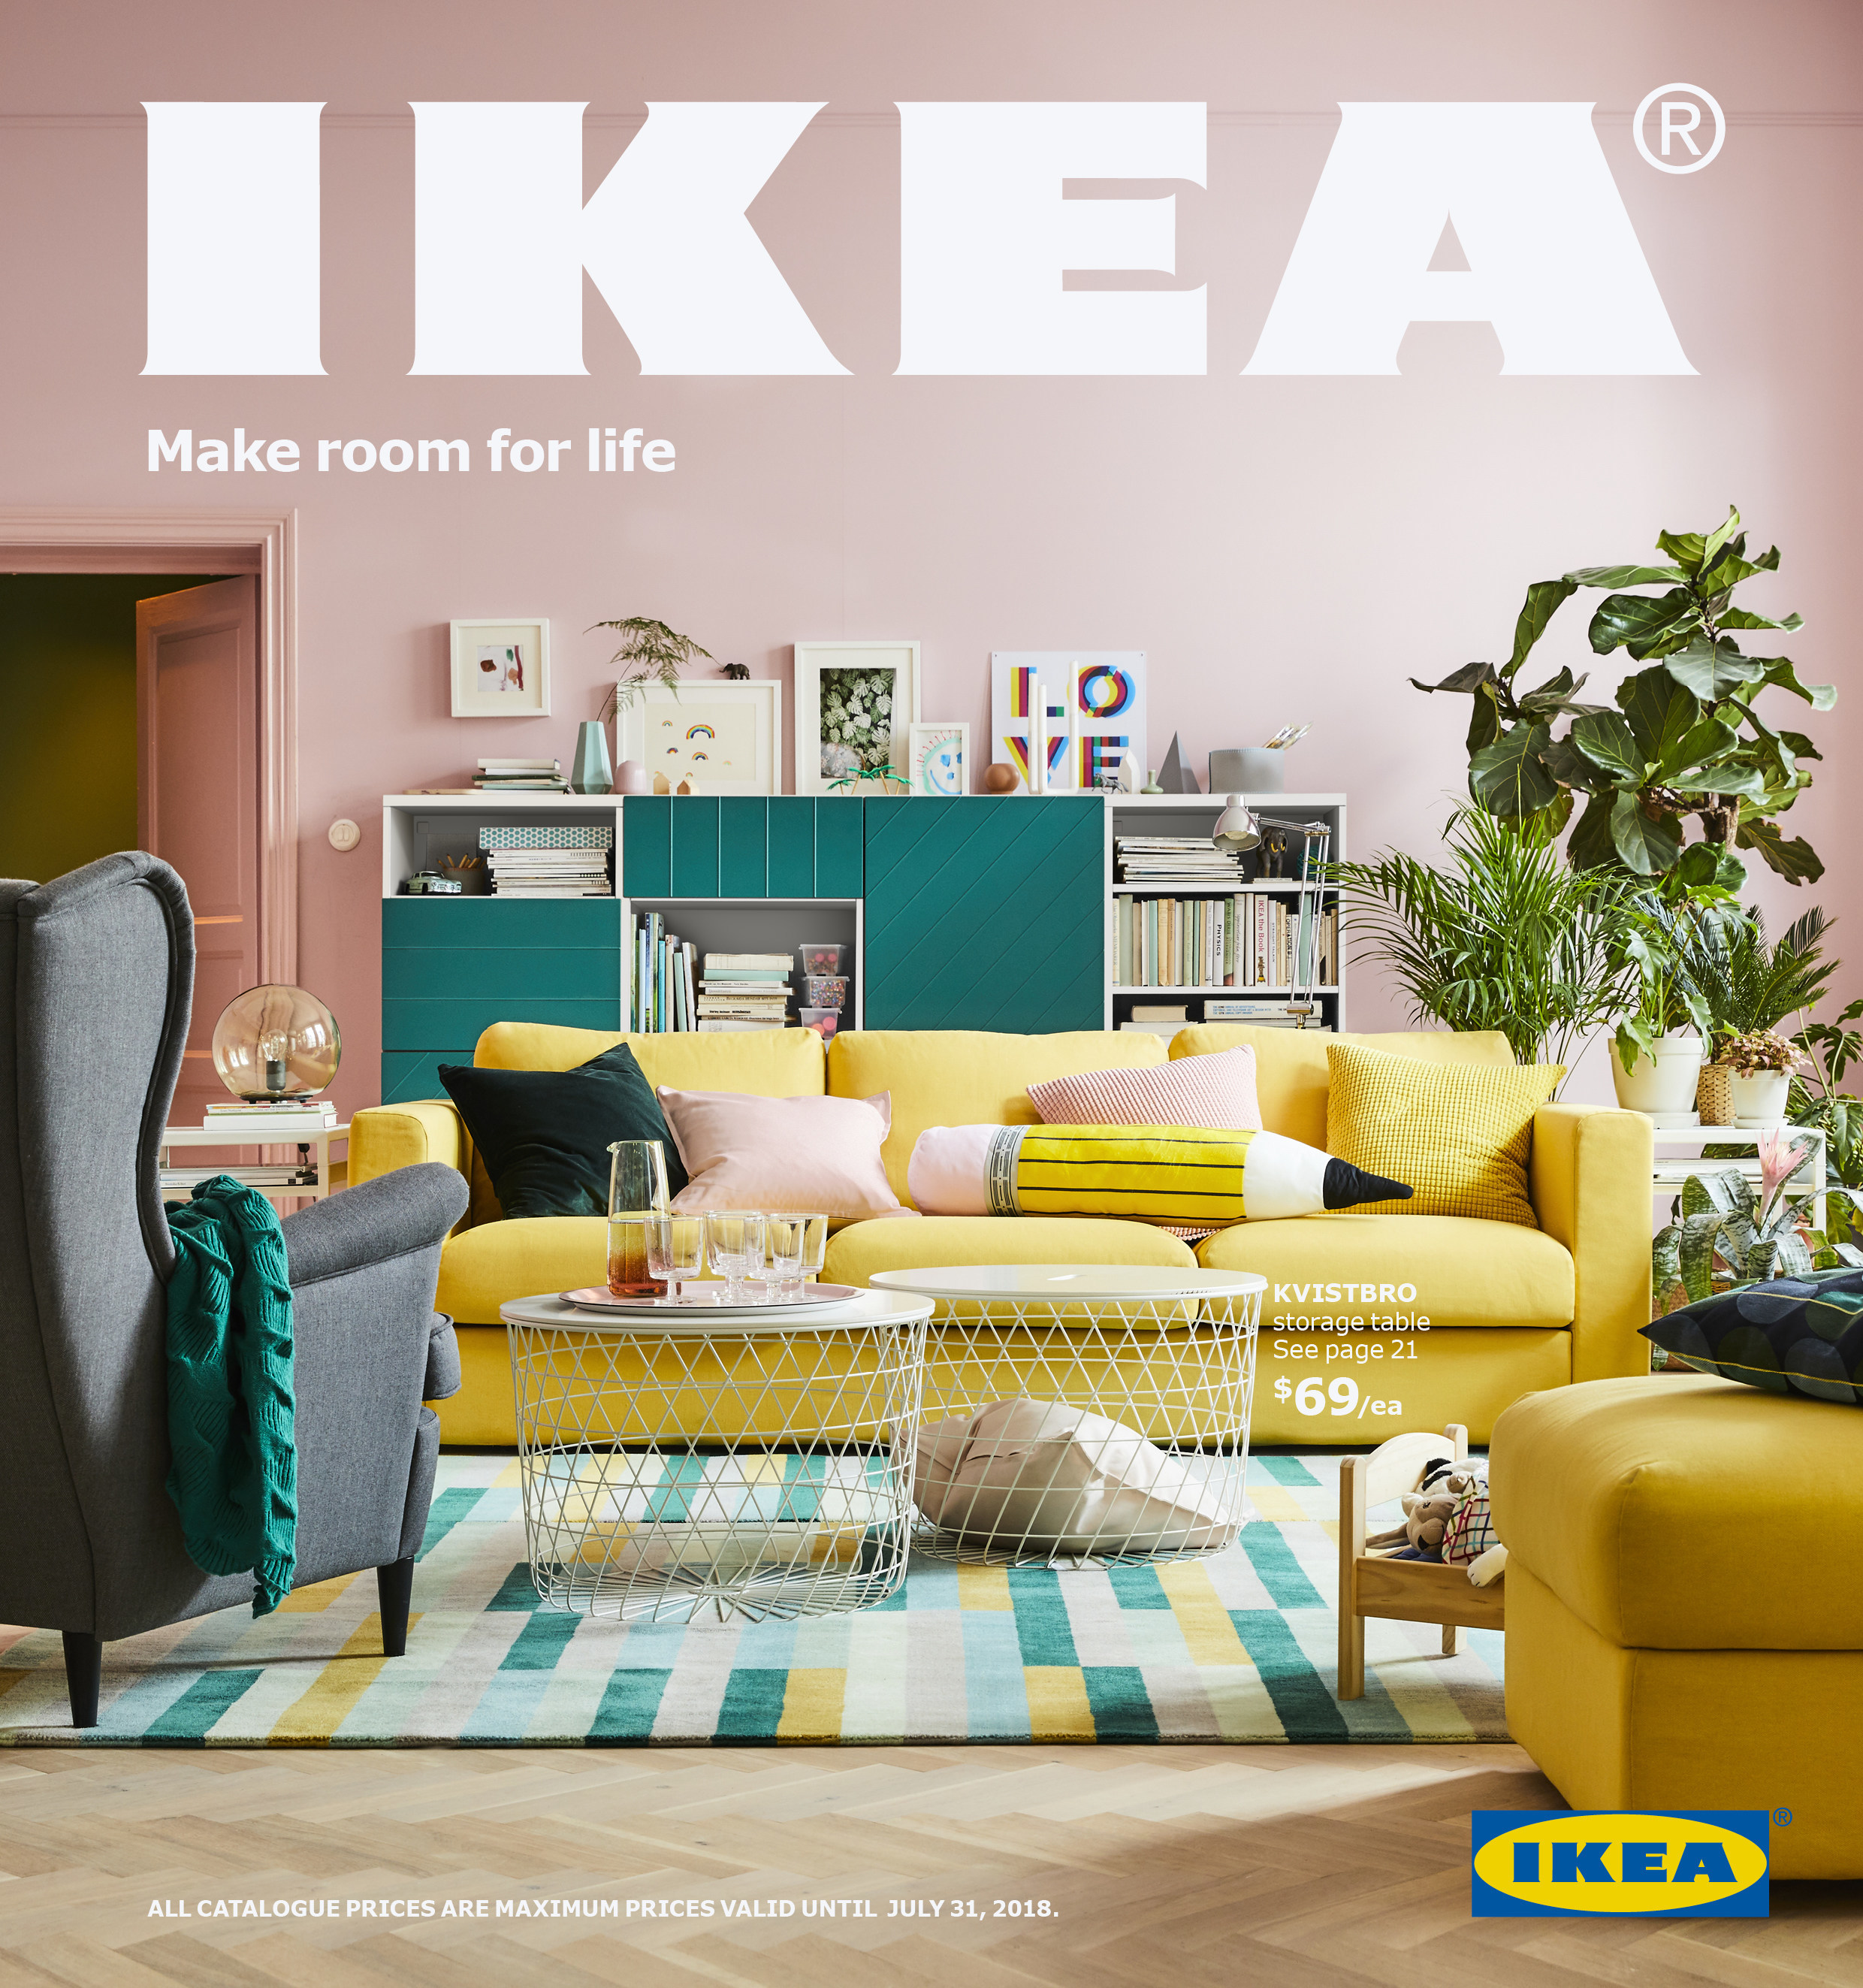 Ikea Catalogue Set To Land In Mailbo